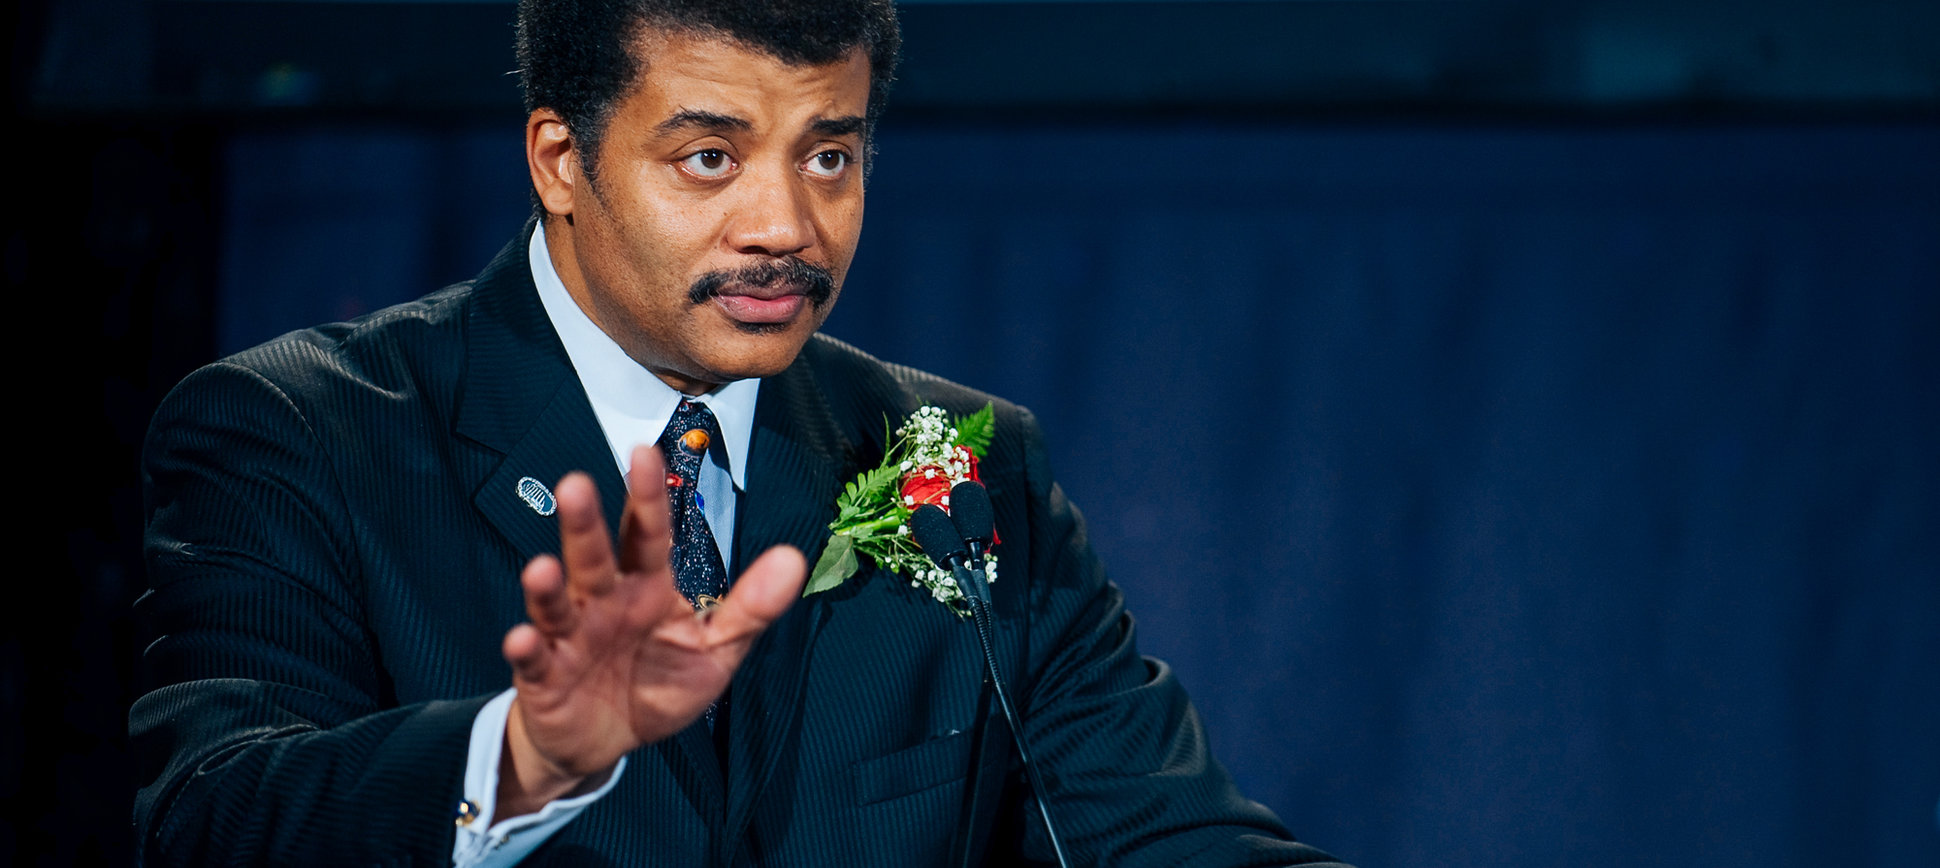 15-brilliant-life-lessons-from-neil-degrasse-tyson